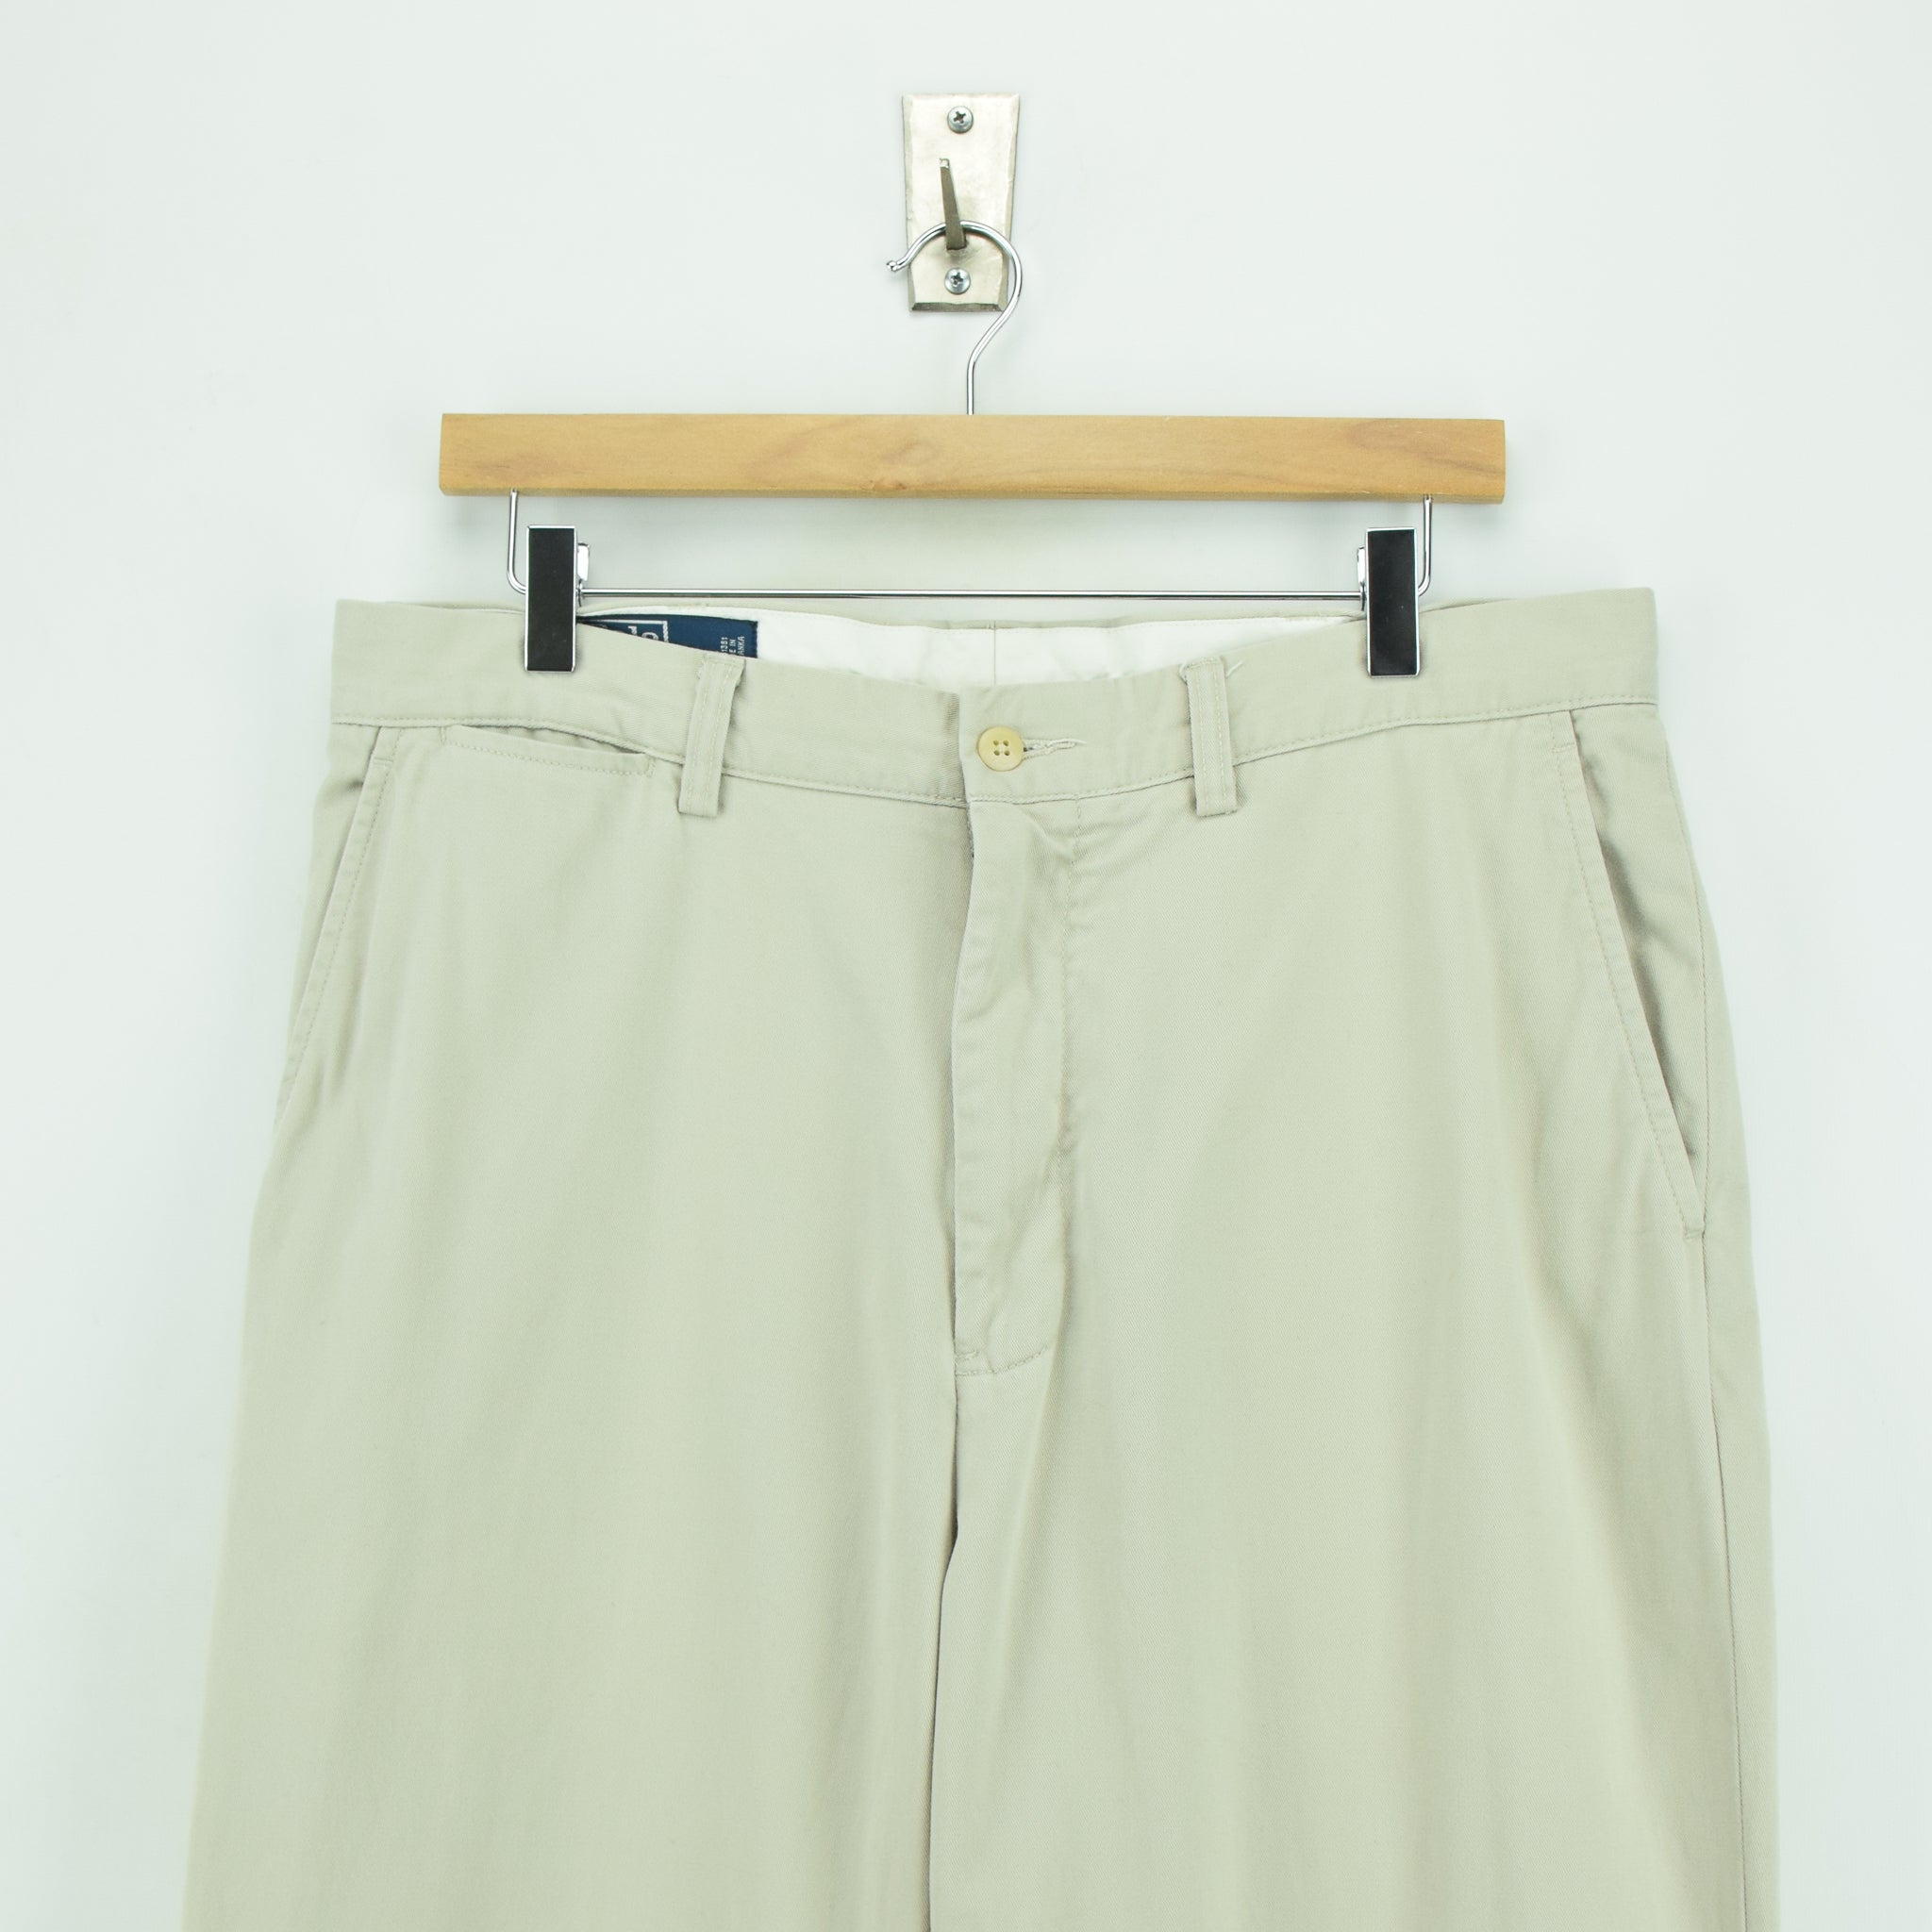 Ralph Lauren Polo Prospect Pant Chinos Stone Flat Front Trousers 32 W 30 L waist